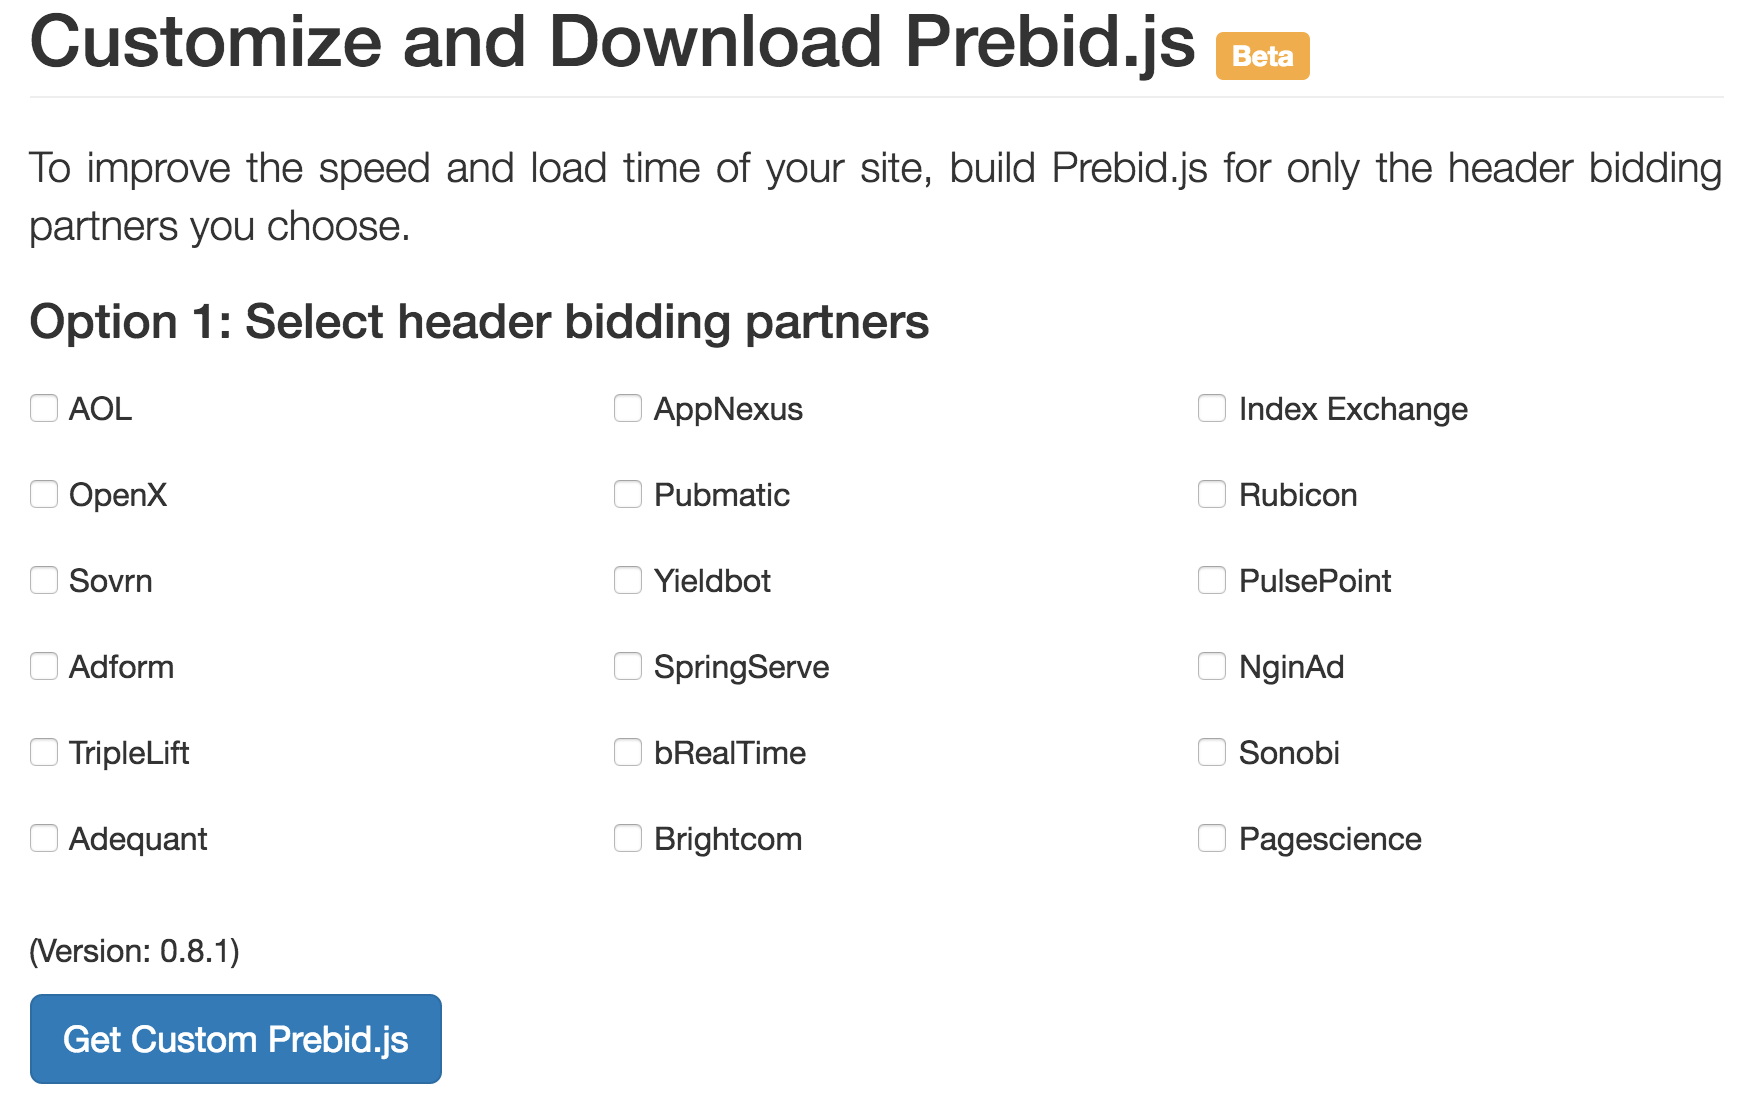 Prebid.js Customize Download UI